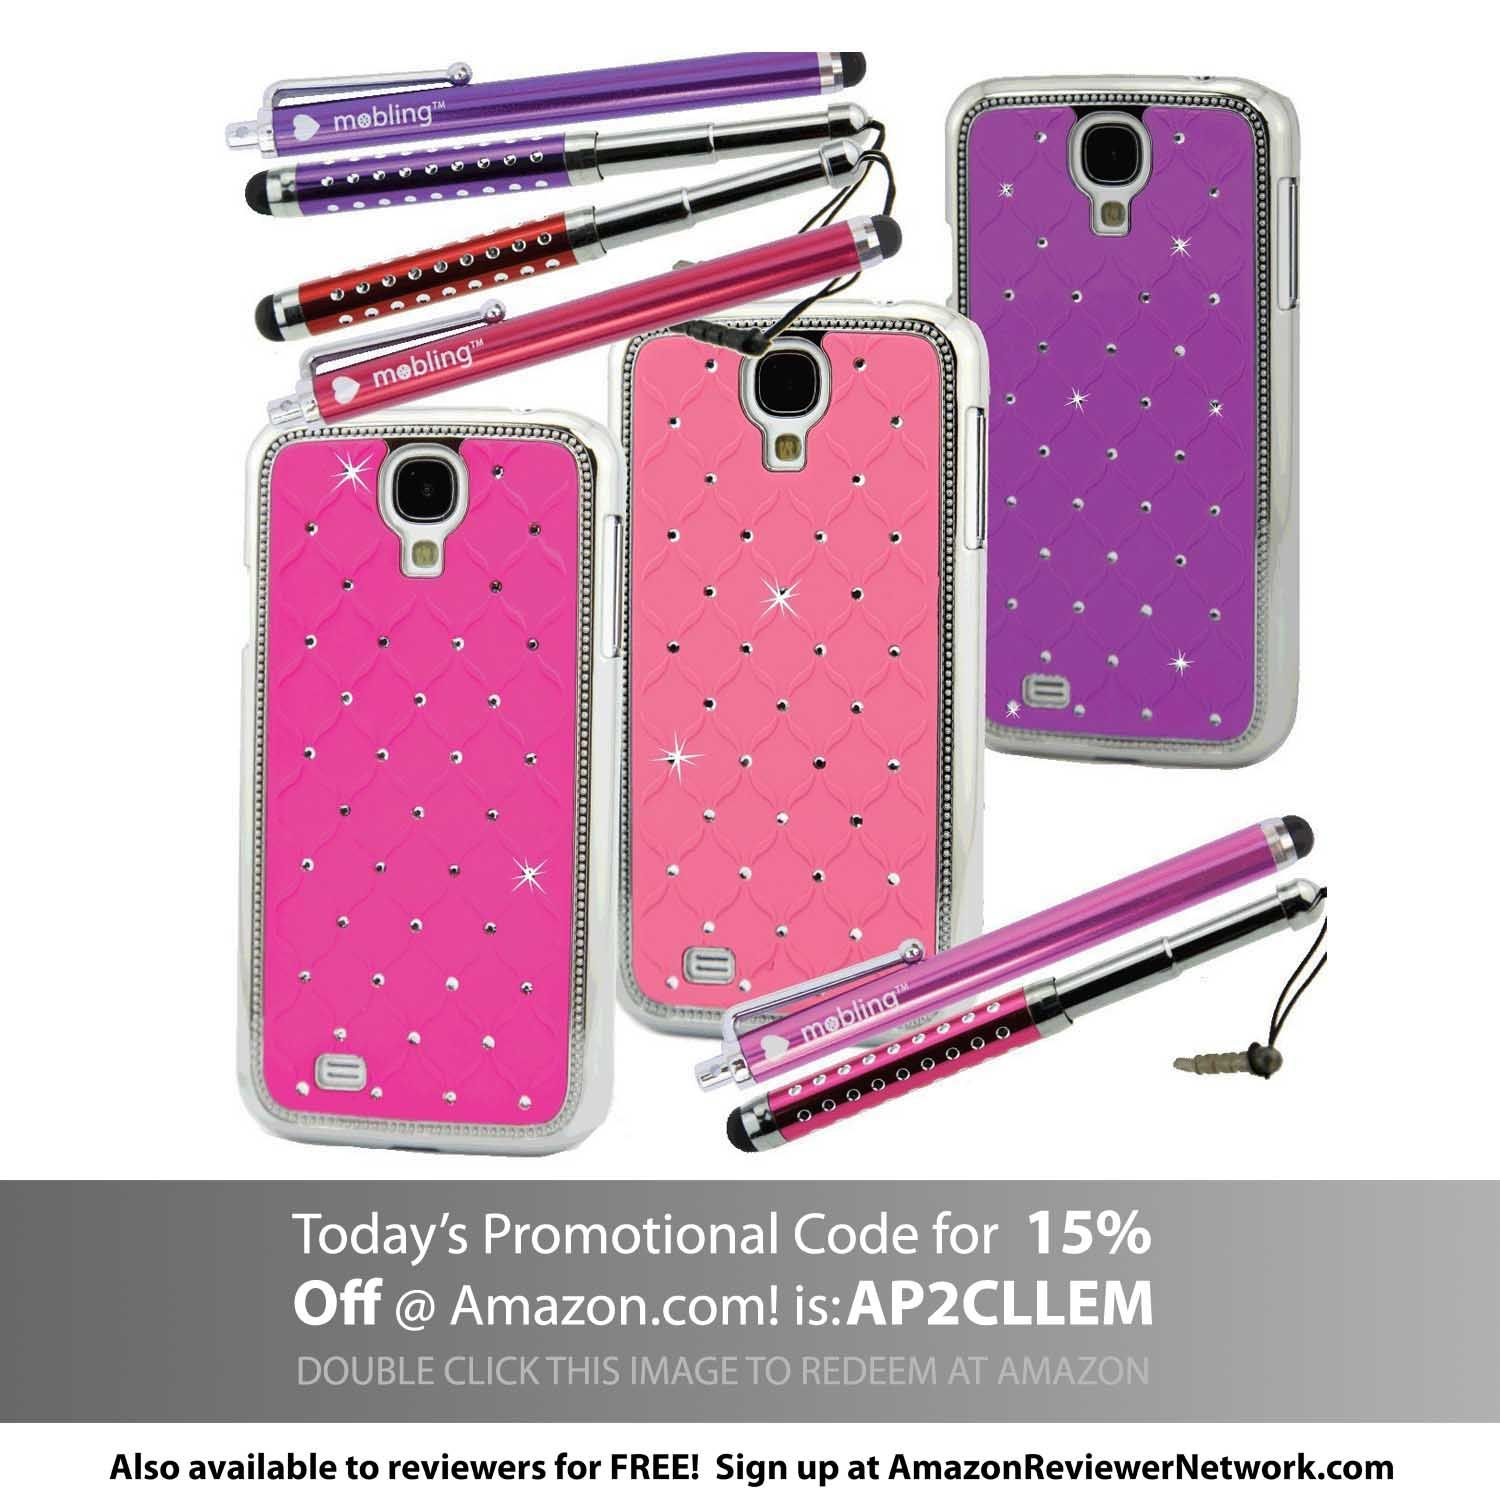 Designer ChromeBling Cases with ExtendaBling and Lovin